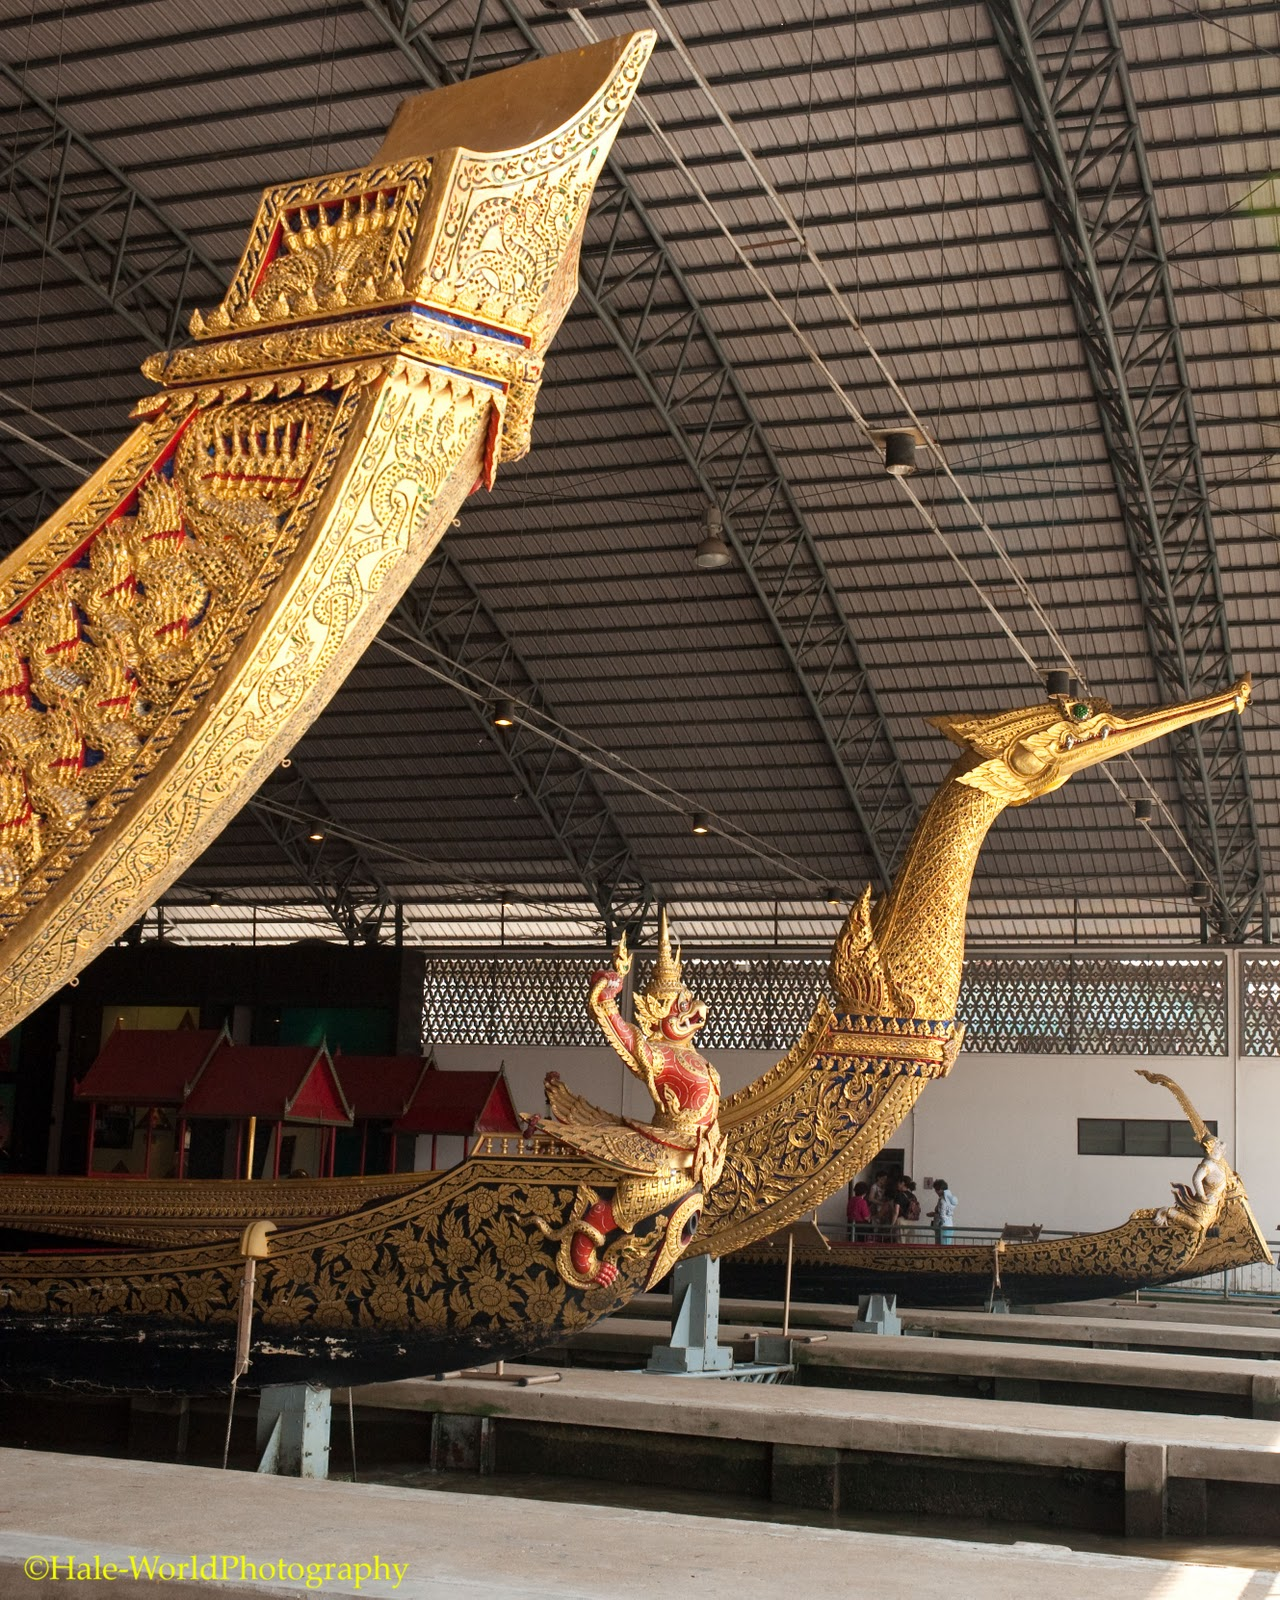 Allens World: The Royal Barge National Museum